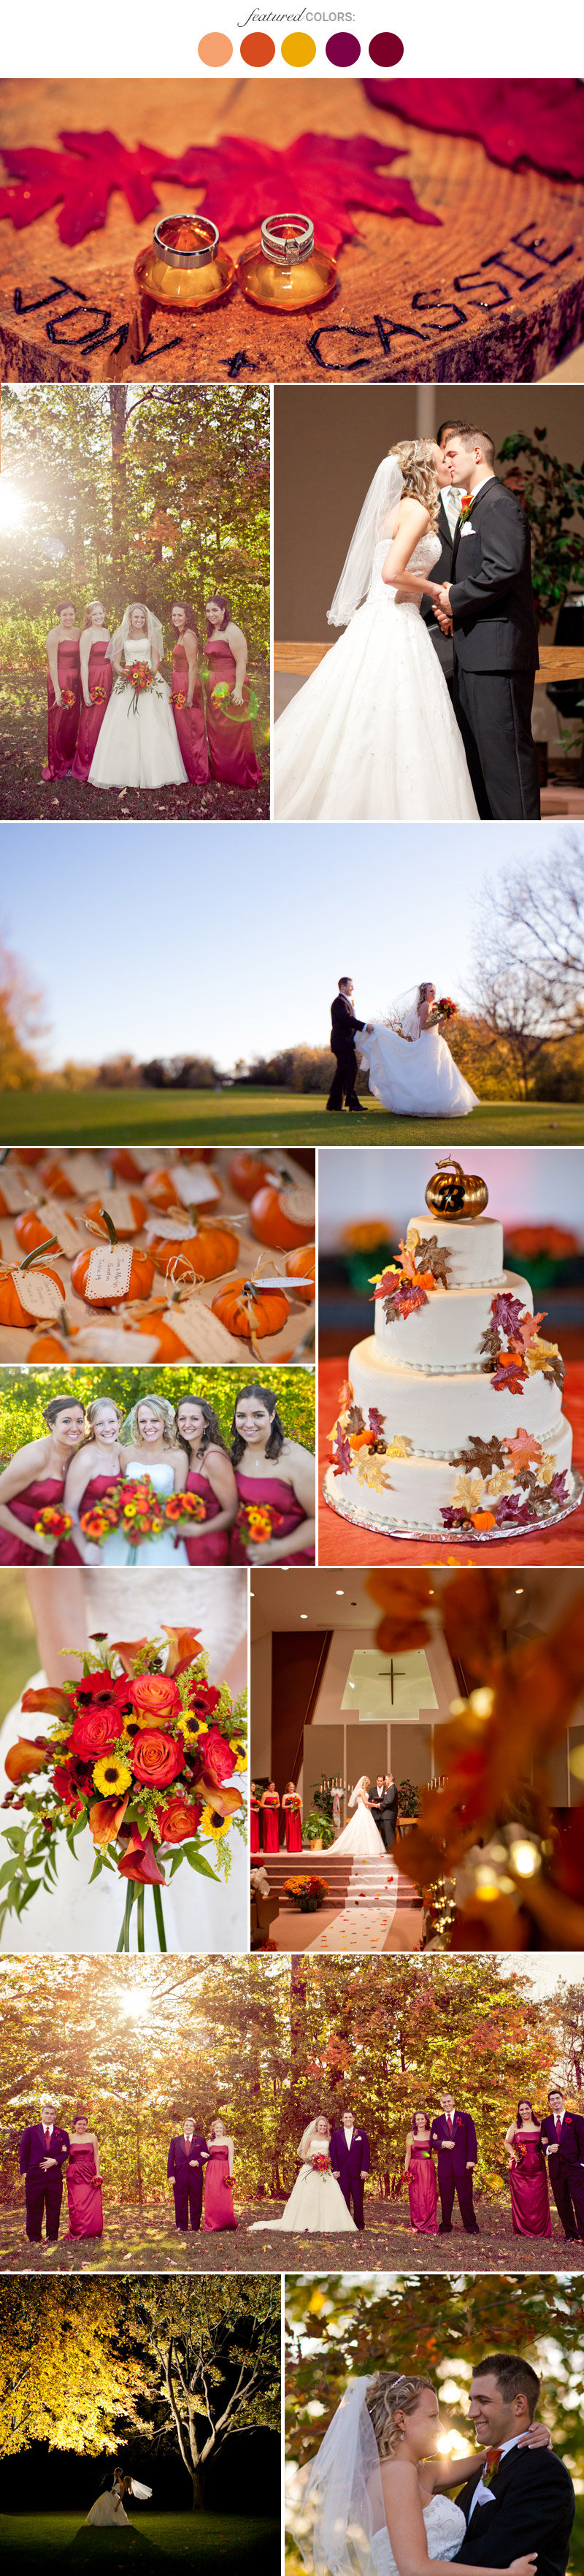 Fall Wedding Colors: 25 Combinations You'll Love BridalGuide